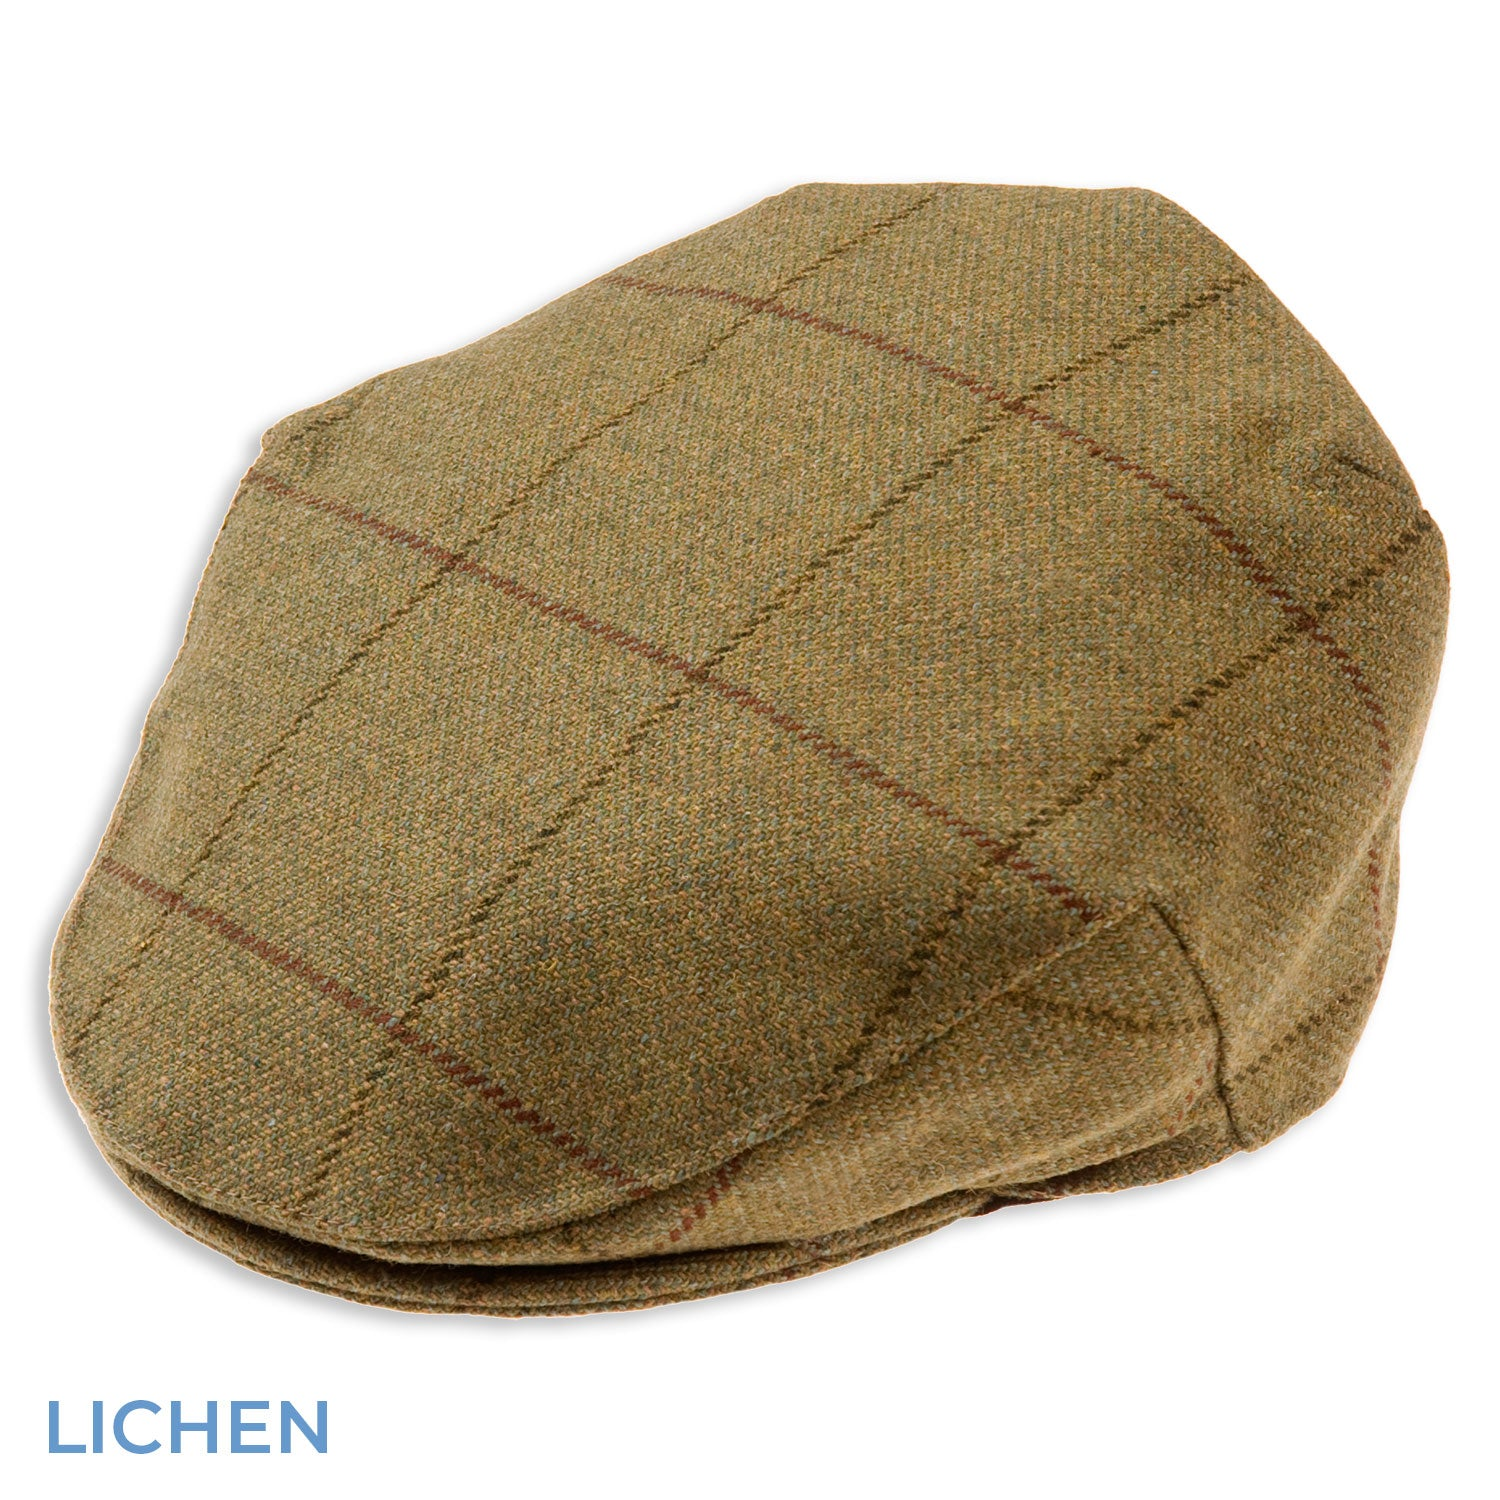 Lichen Alan Paine Kids Rutland Waterproof Tweed Flat Cap